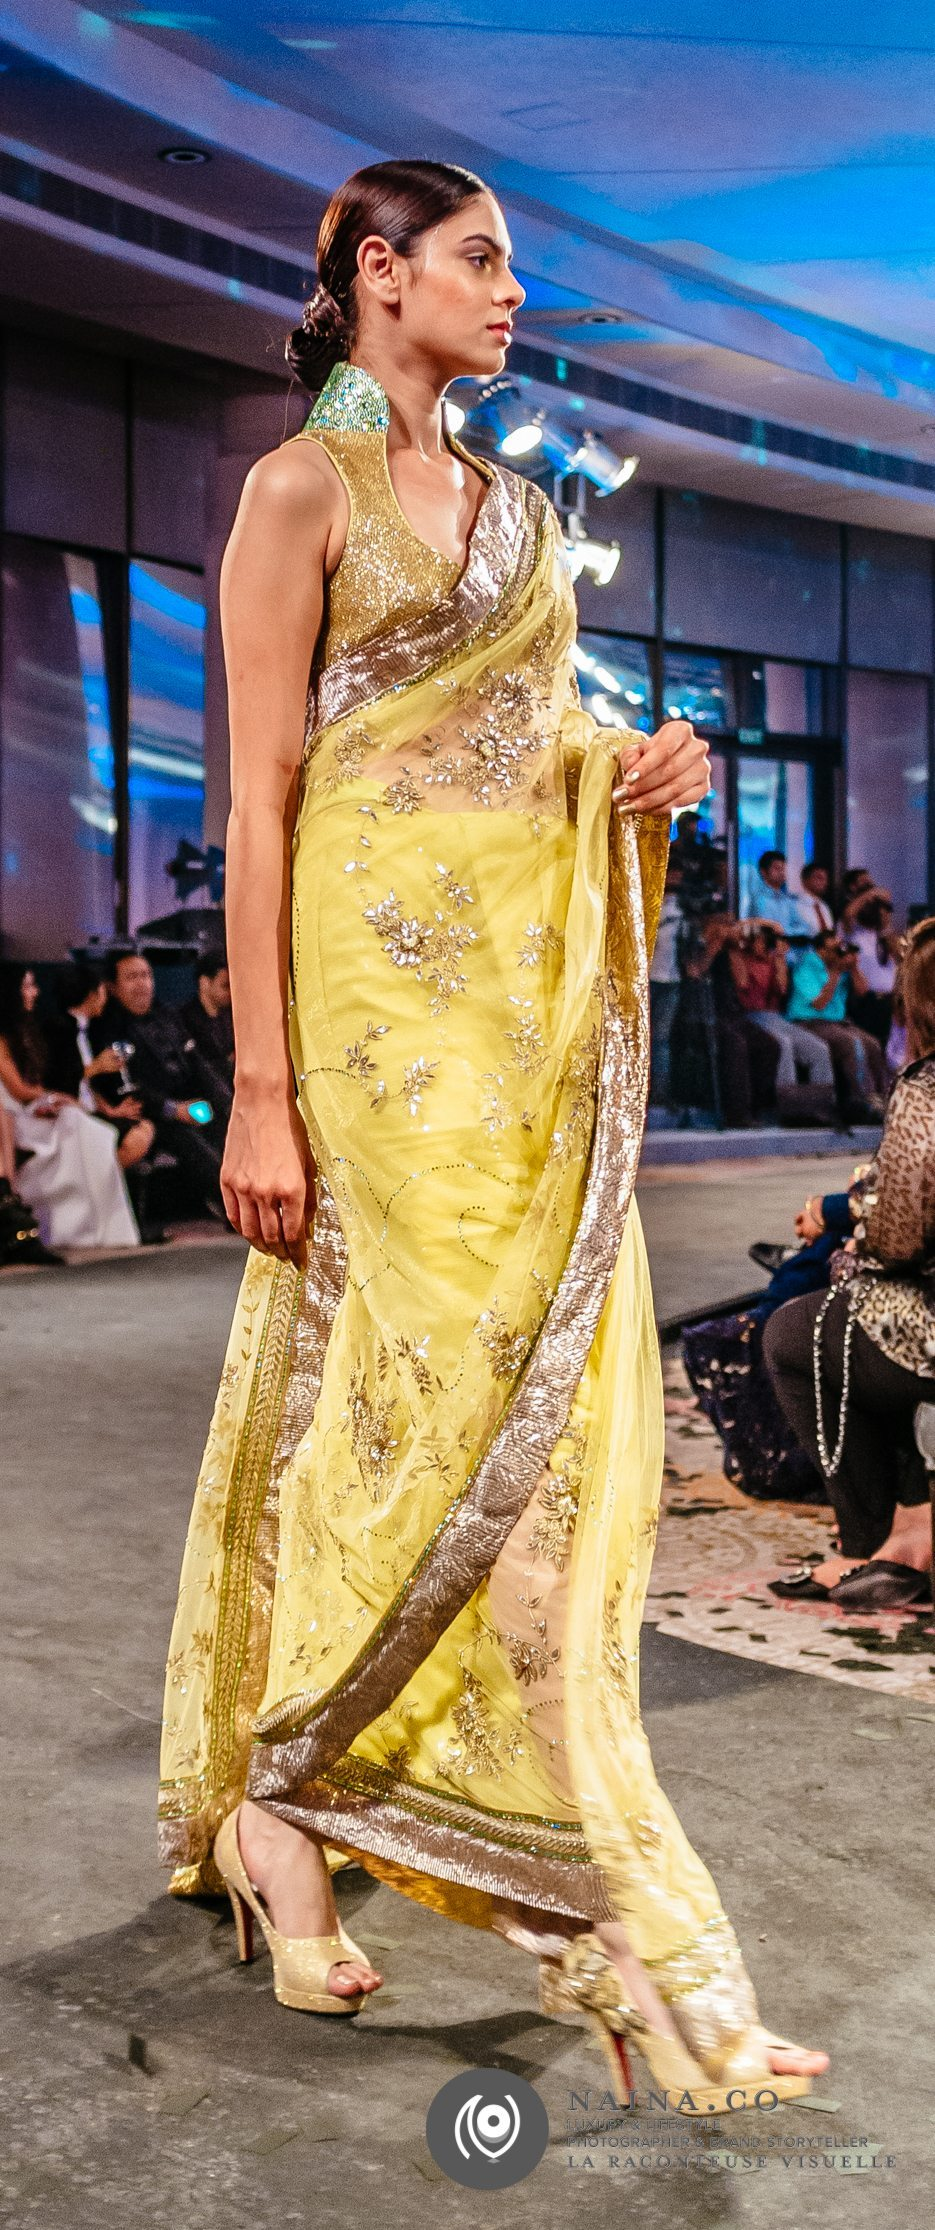 Naina.co-Photographer-Raconteuse-Storyteller-Luxury-Lifestyle-September-2014-Manav-Gangwani-Couture-EyesForFashion